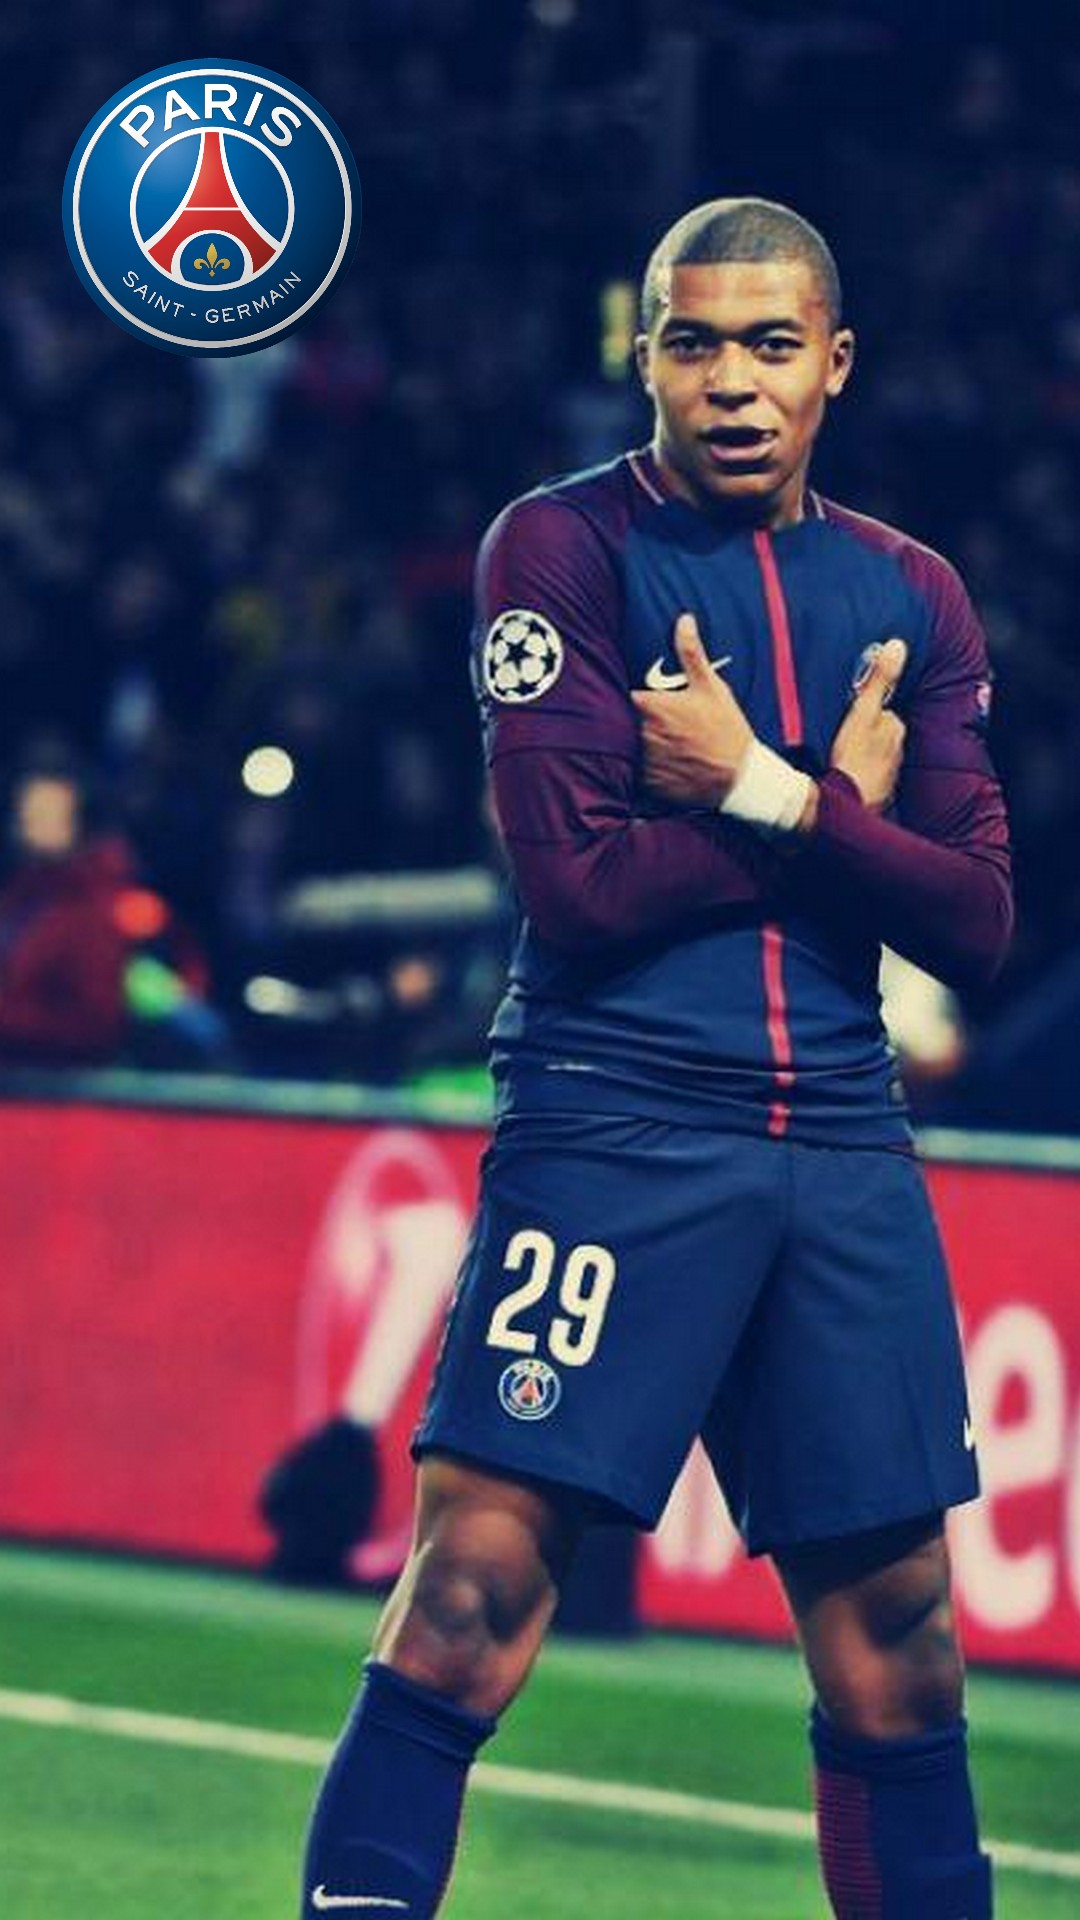 iphone wallpaper hd kylian mbappe psg